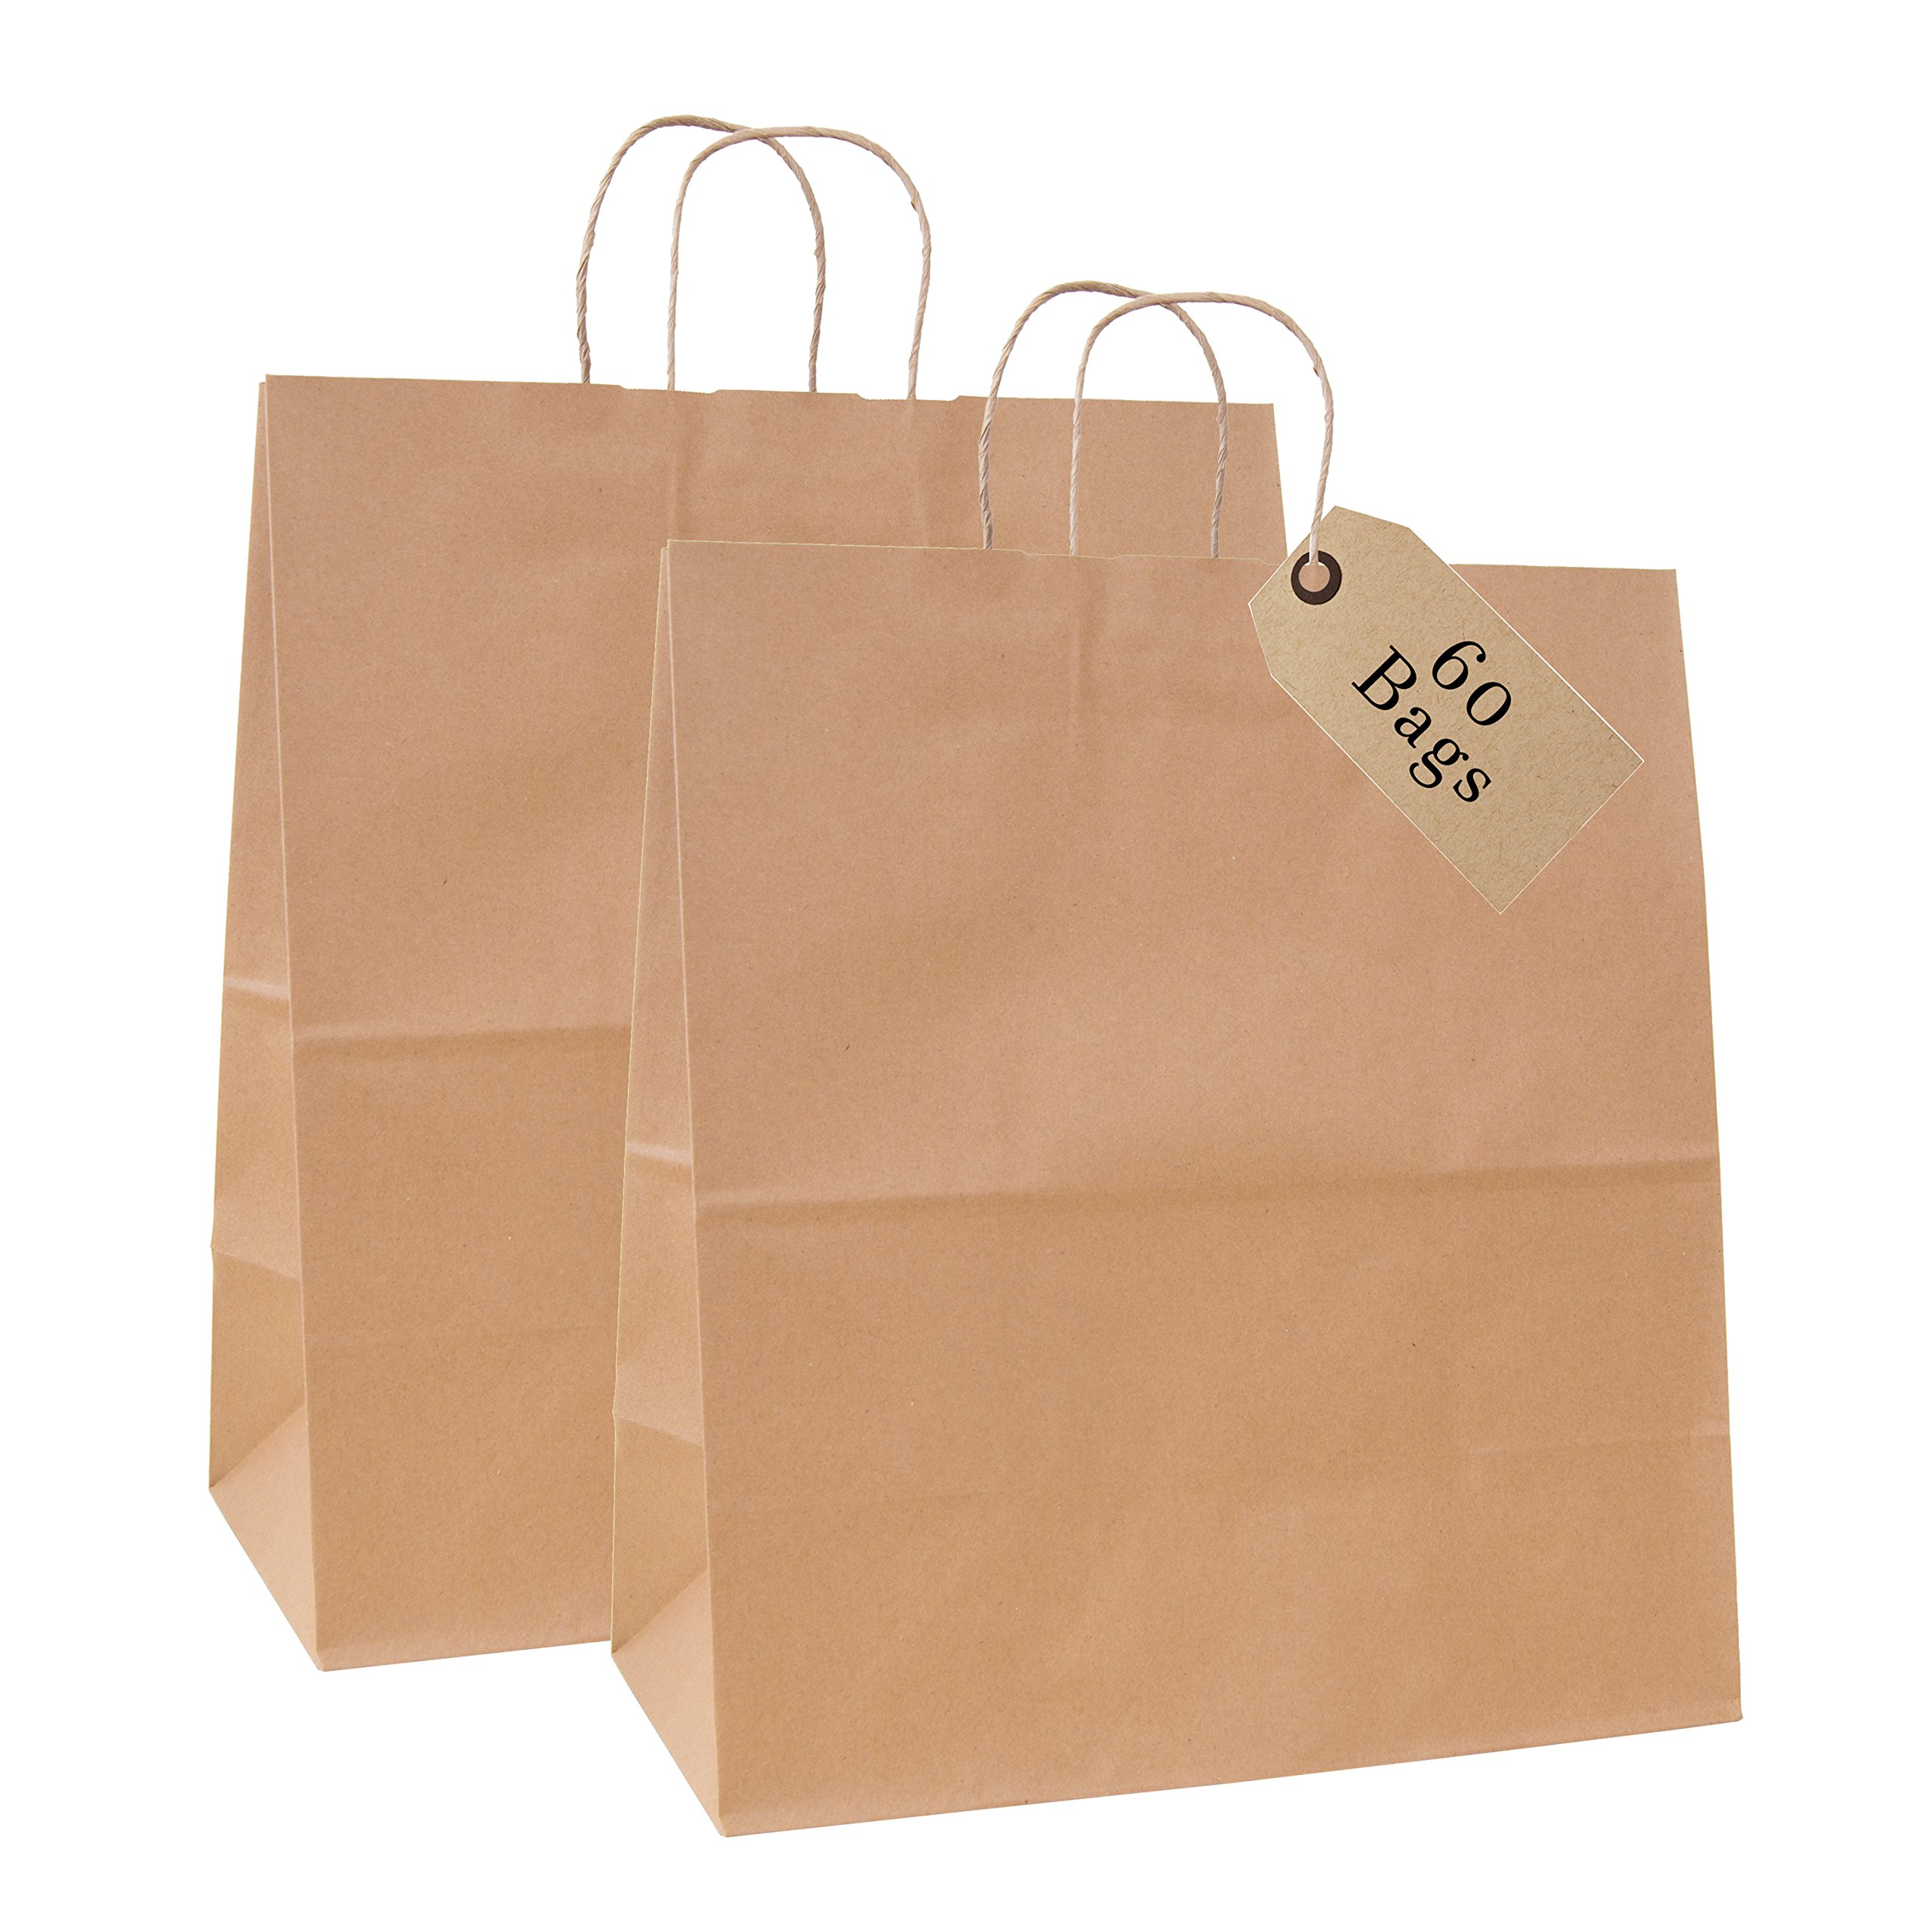 Incredible Packaging - 18'' x 7'' x 18'' Jumbo Kraft Paper Bags with Handles for Shopping, Retail and Merchandise. Strong and Reusable - 80 Paper Thickness- 100% Recycled (60, Brown)